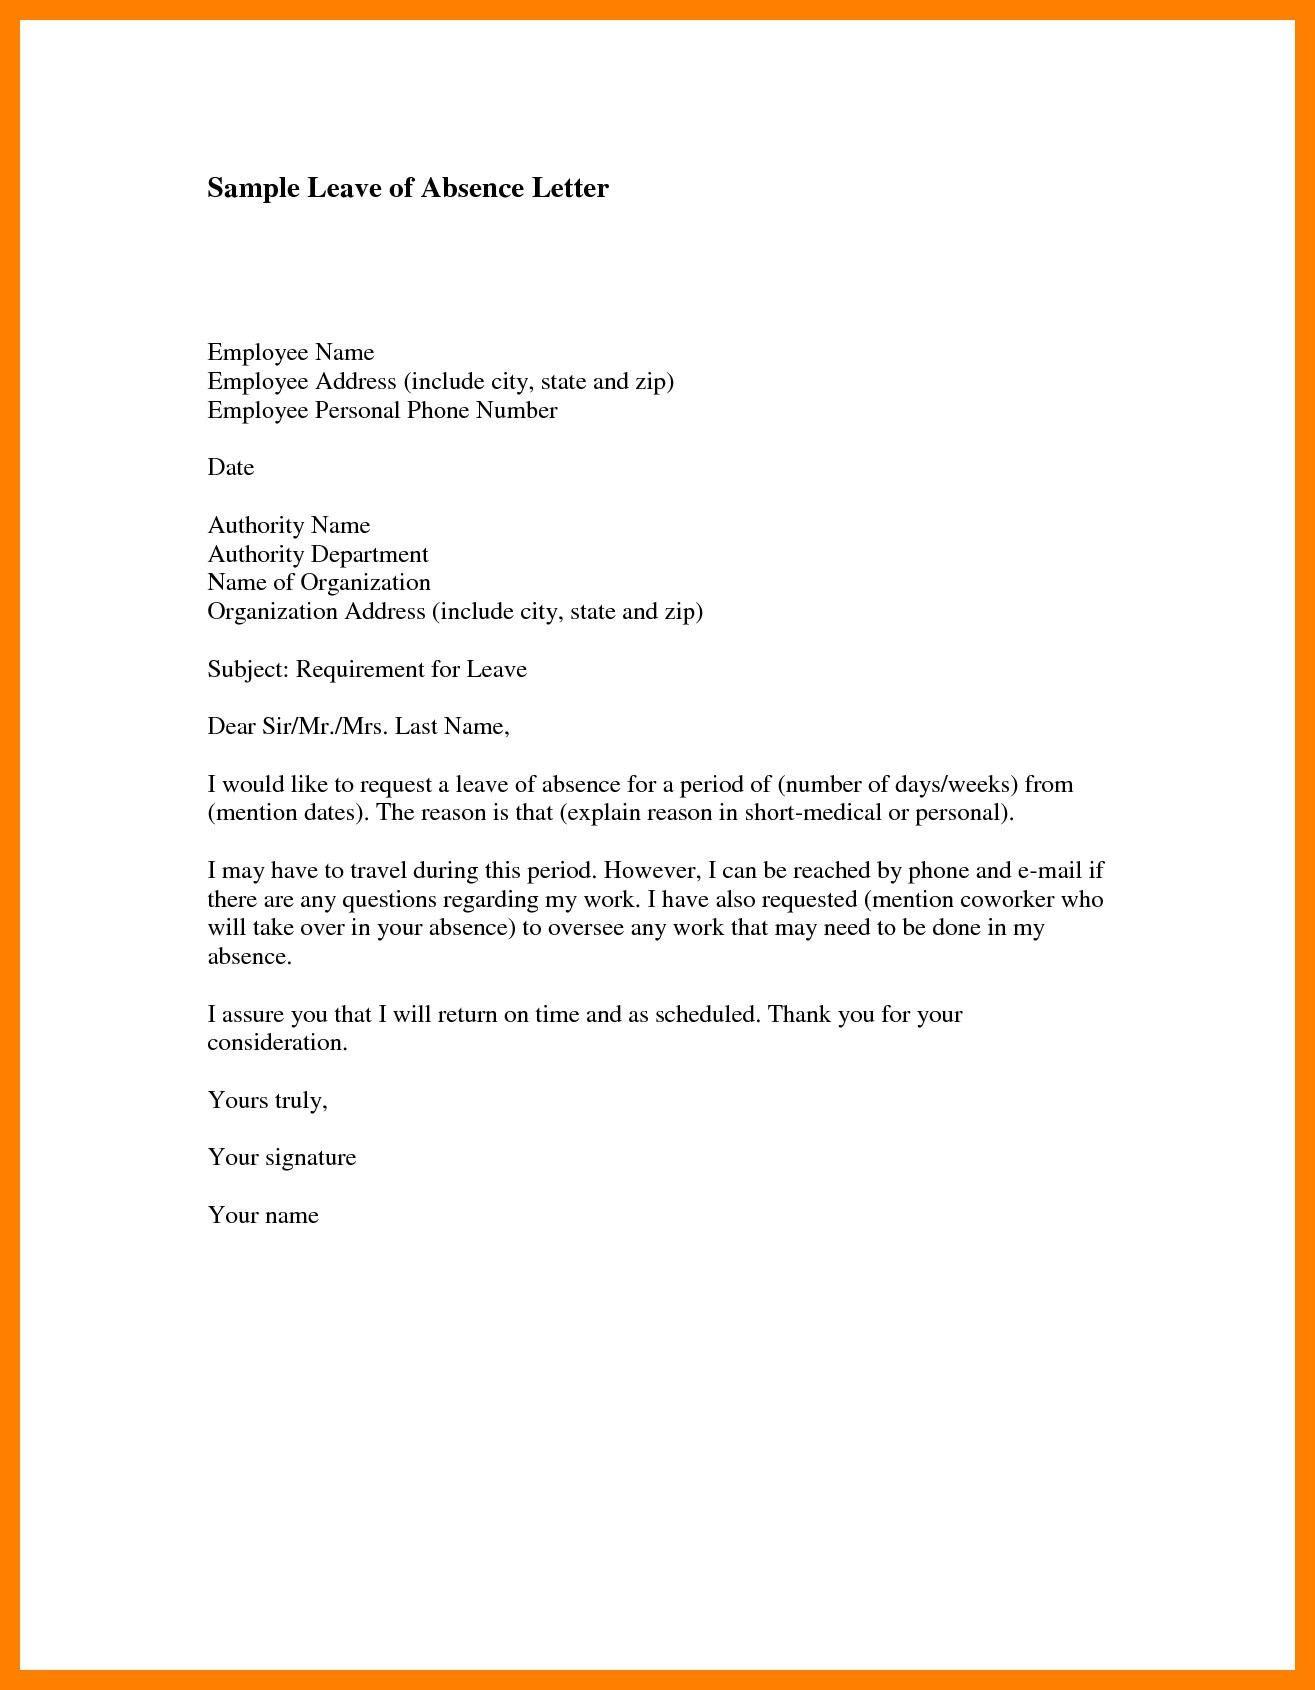 Medical Leave Of Absence Letter Template - Leave Letter format for Employee New Sample Leave Absence Letter to